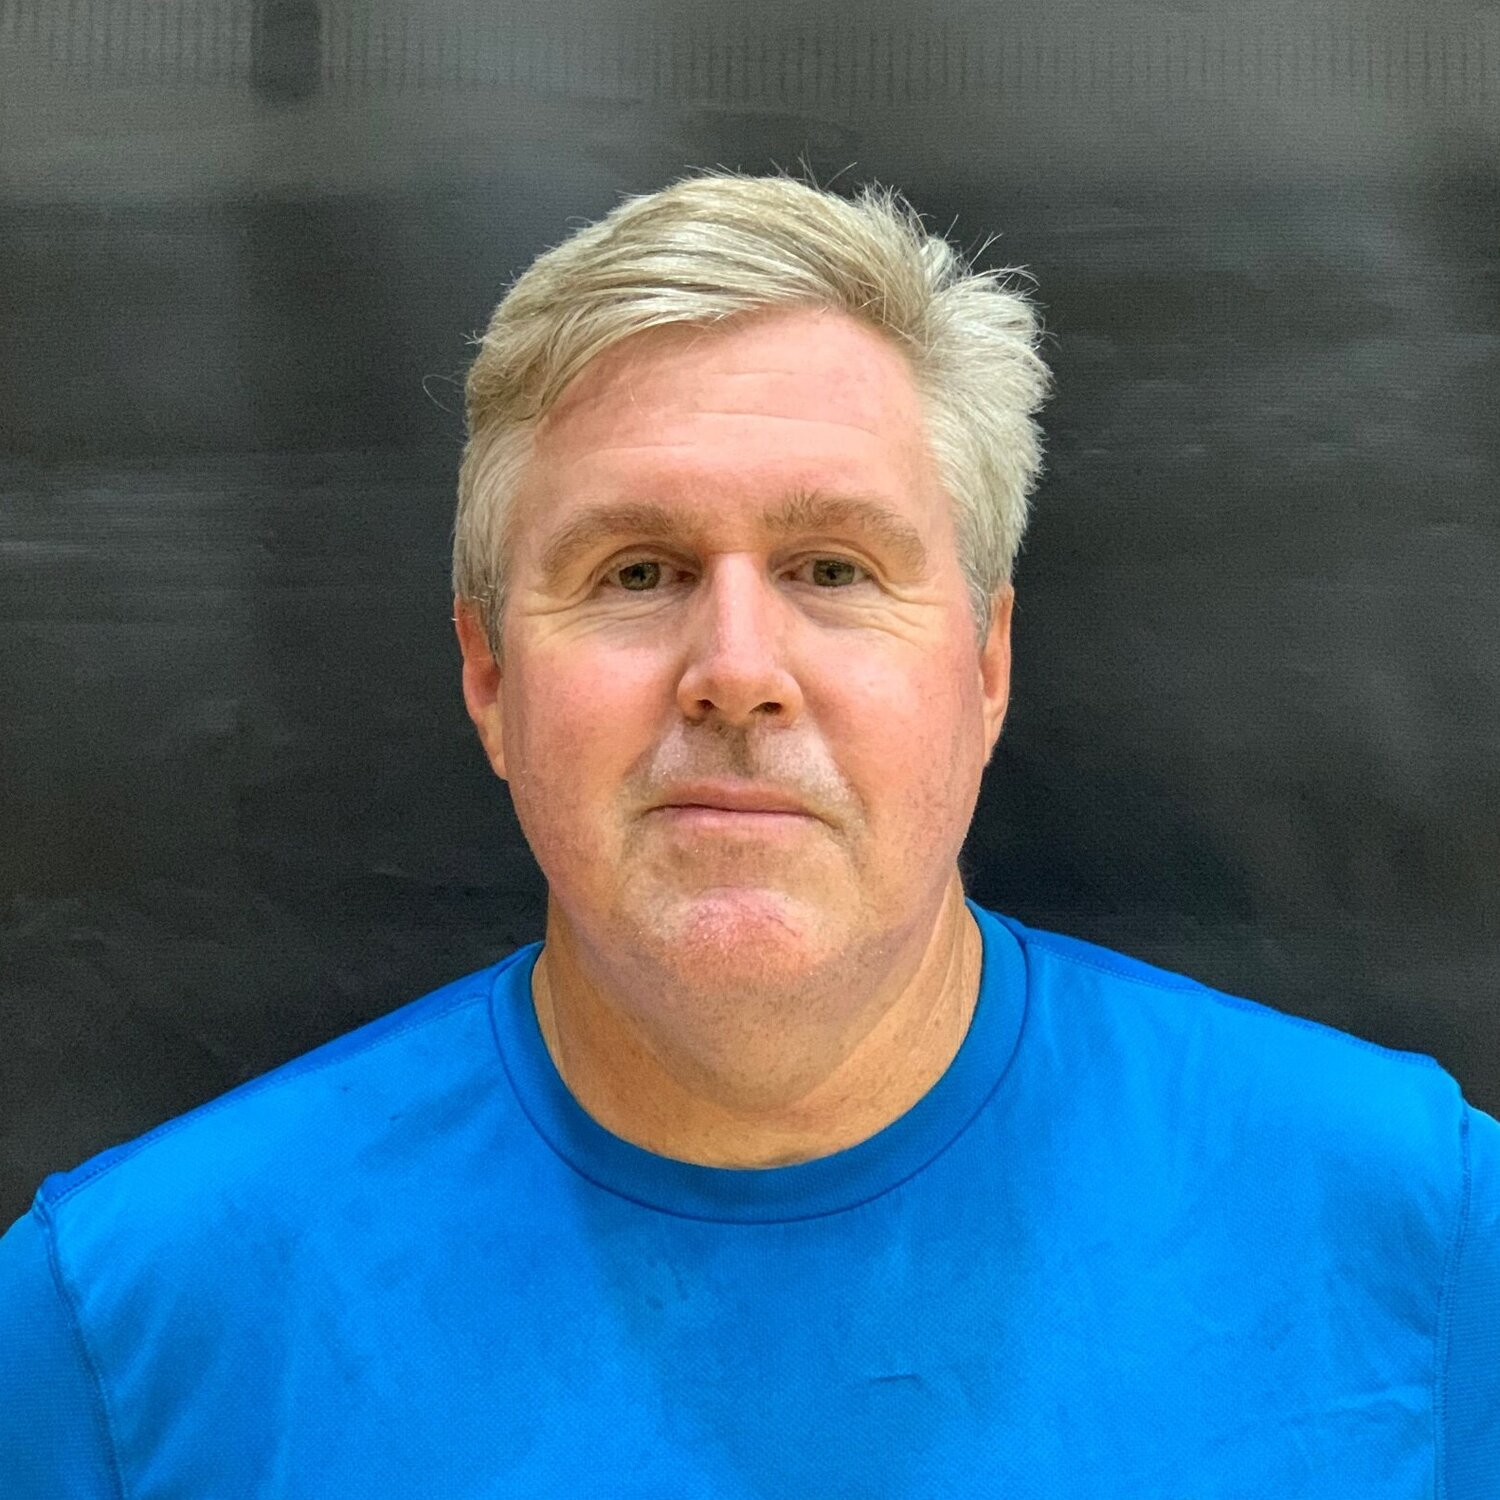 LARRY BARNETT - September 2019 - Current: Boys 15U Assistant Coach, Beach Elite2001- Current: Professional Personal Fitness Trainer.1991-1996: Pro Beach Volleyball Player for AVP